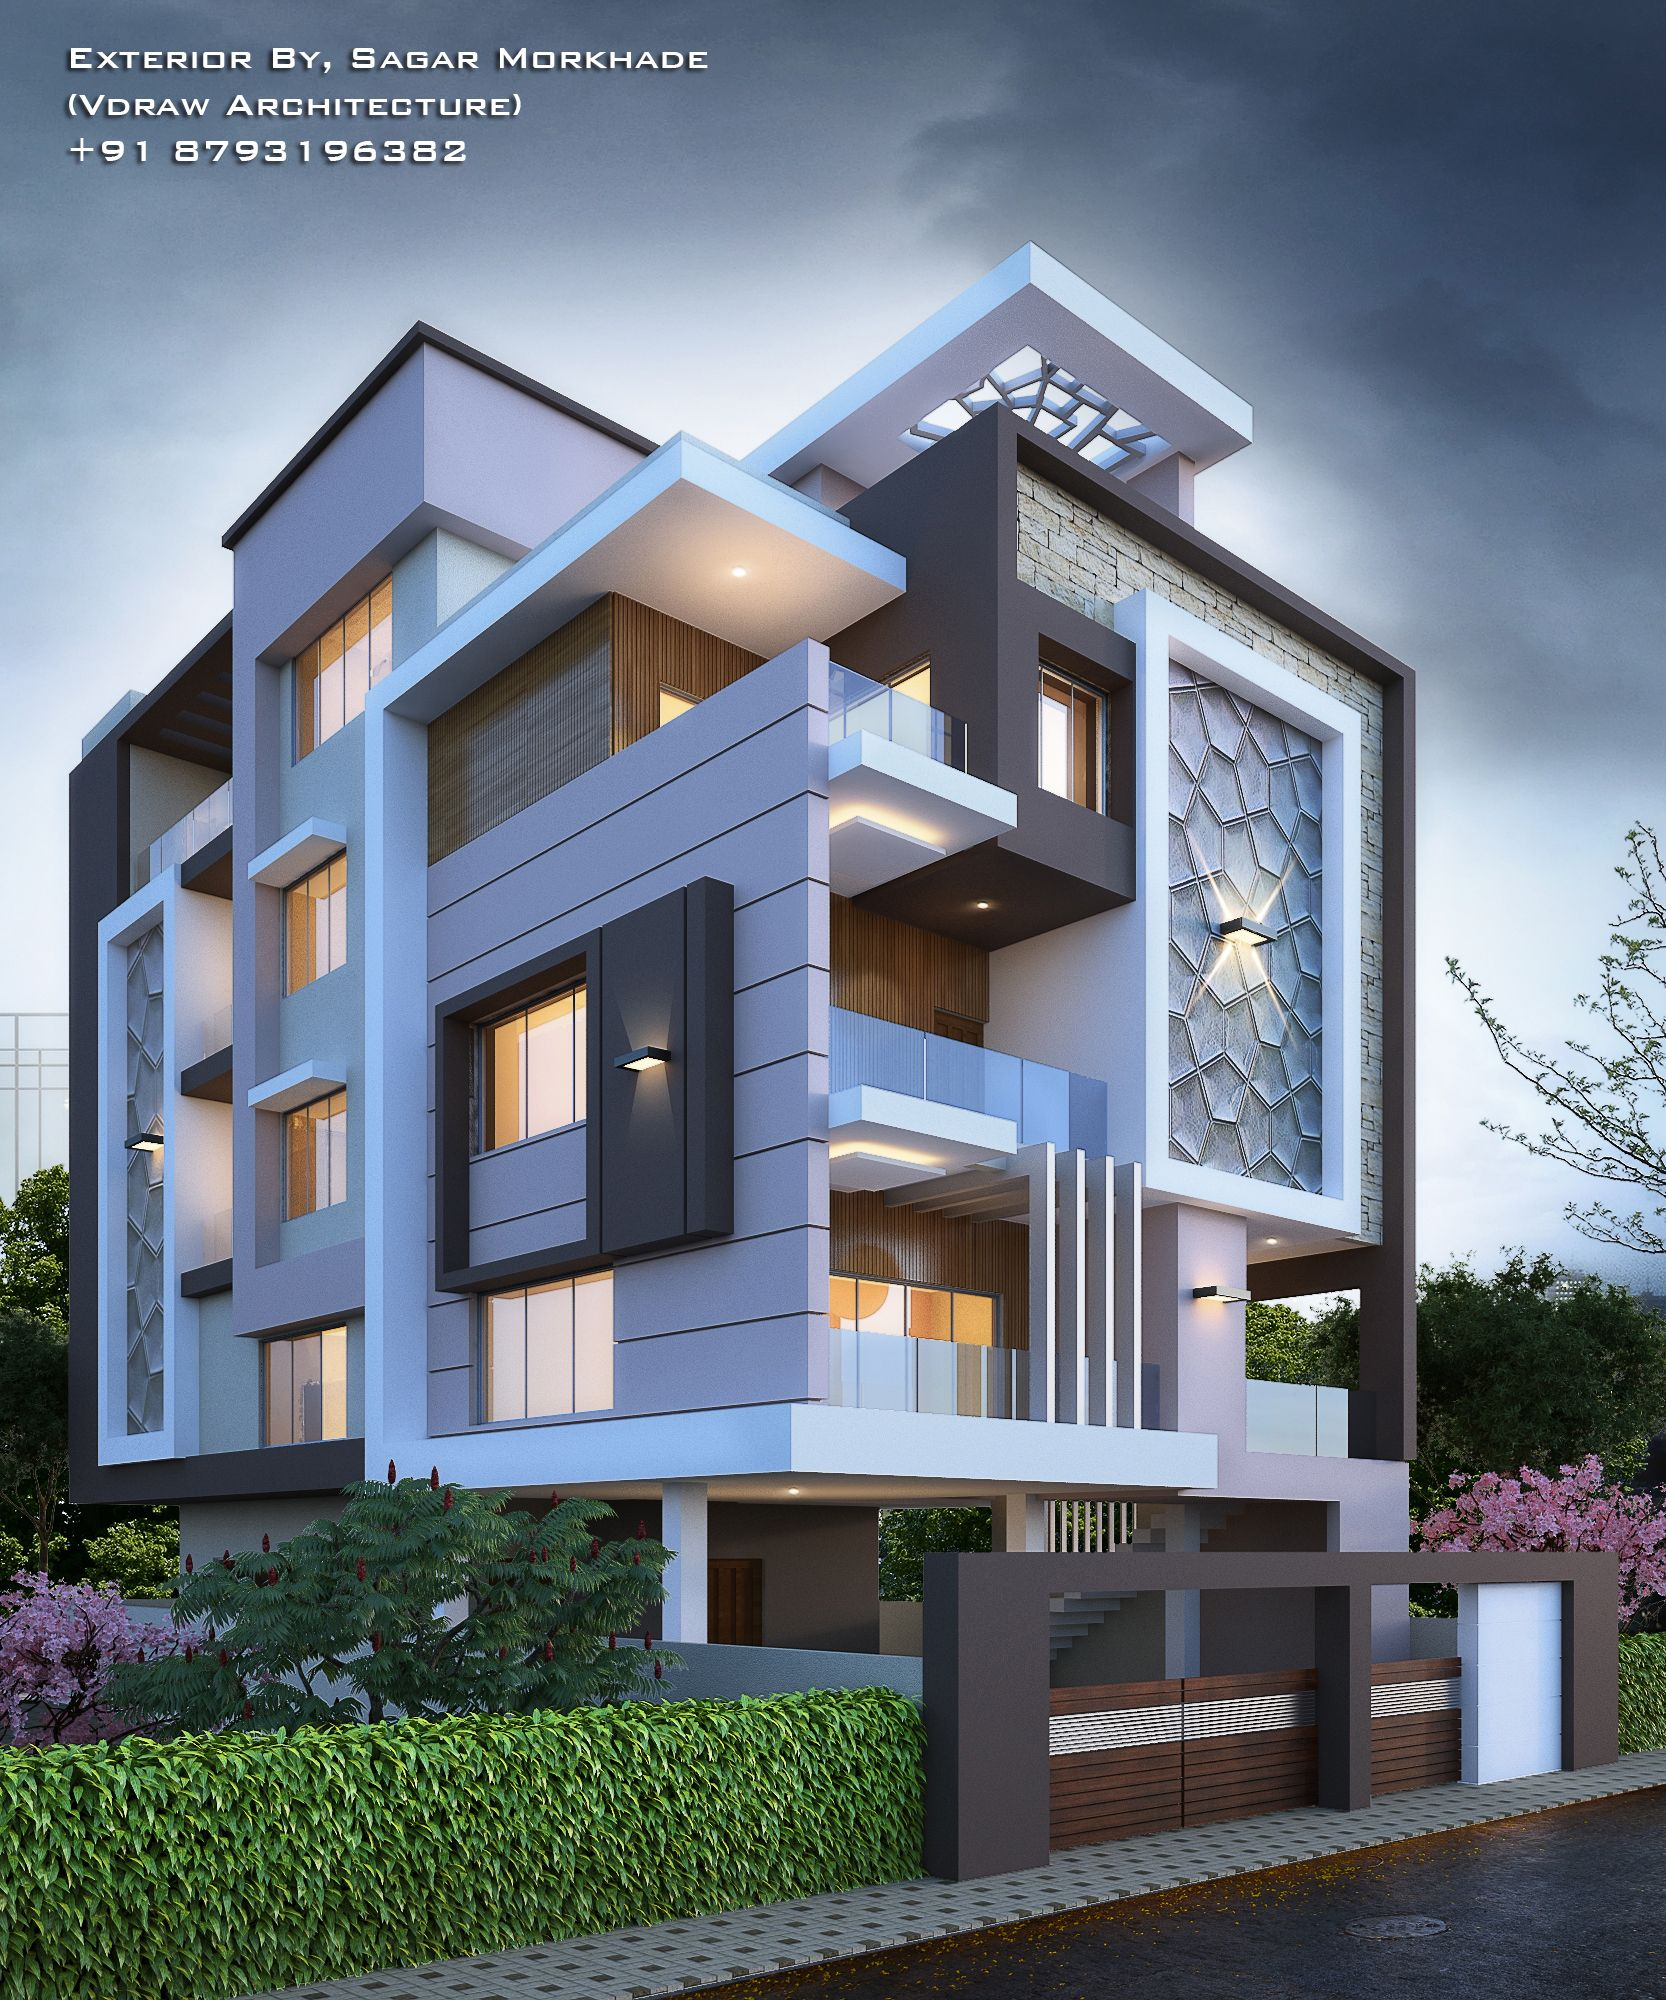 Architectural Design Of Residential Building Modern Residential House Bungalow Exterior By Sagar Morkhade